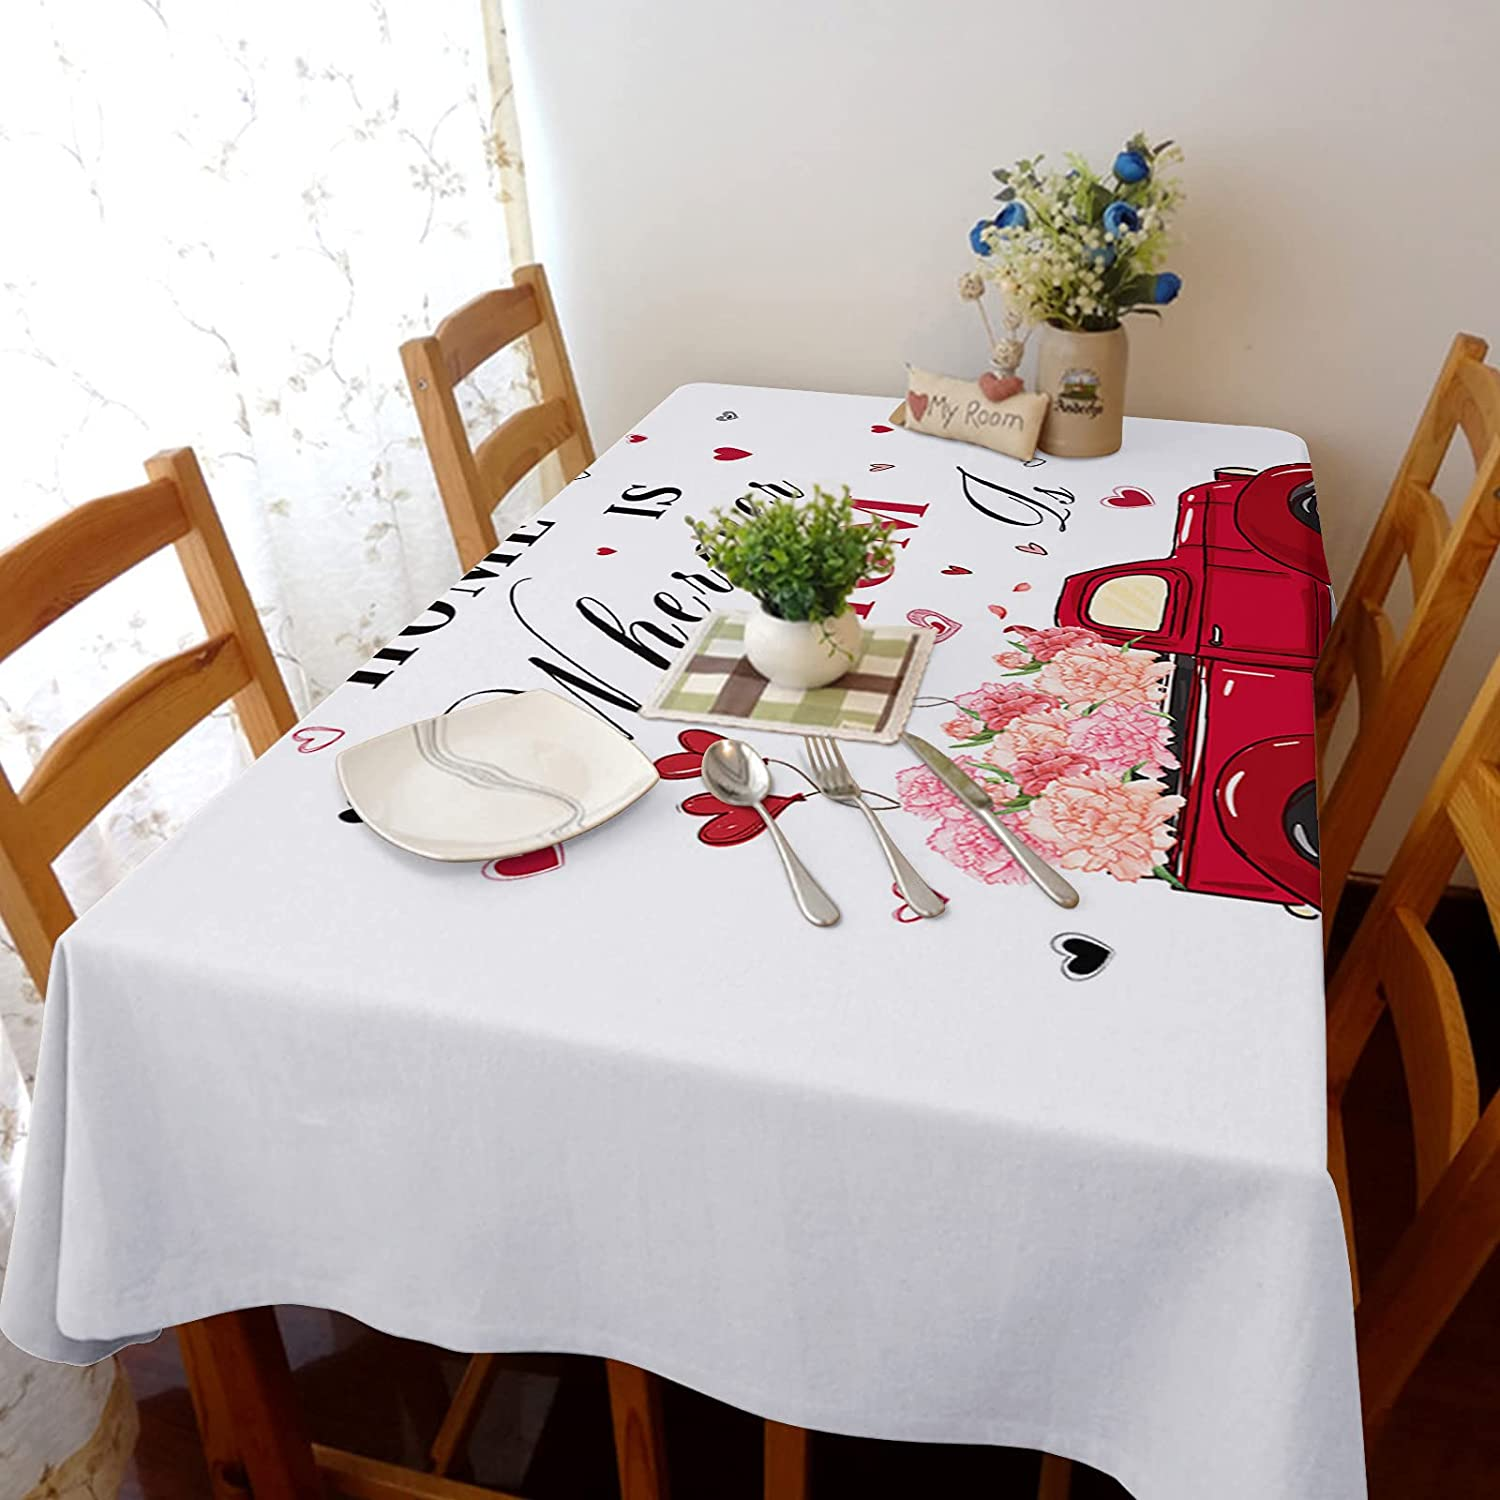 Tablecloth Albuquerque Mall for Store Dinning Room Mother's Loves Rec Day Flowers Truck